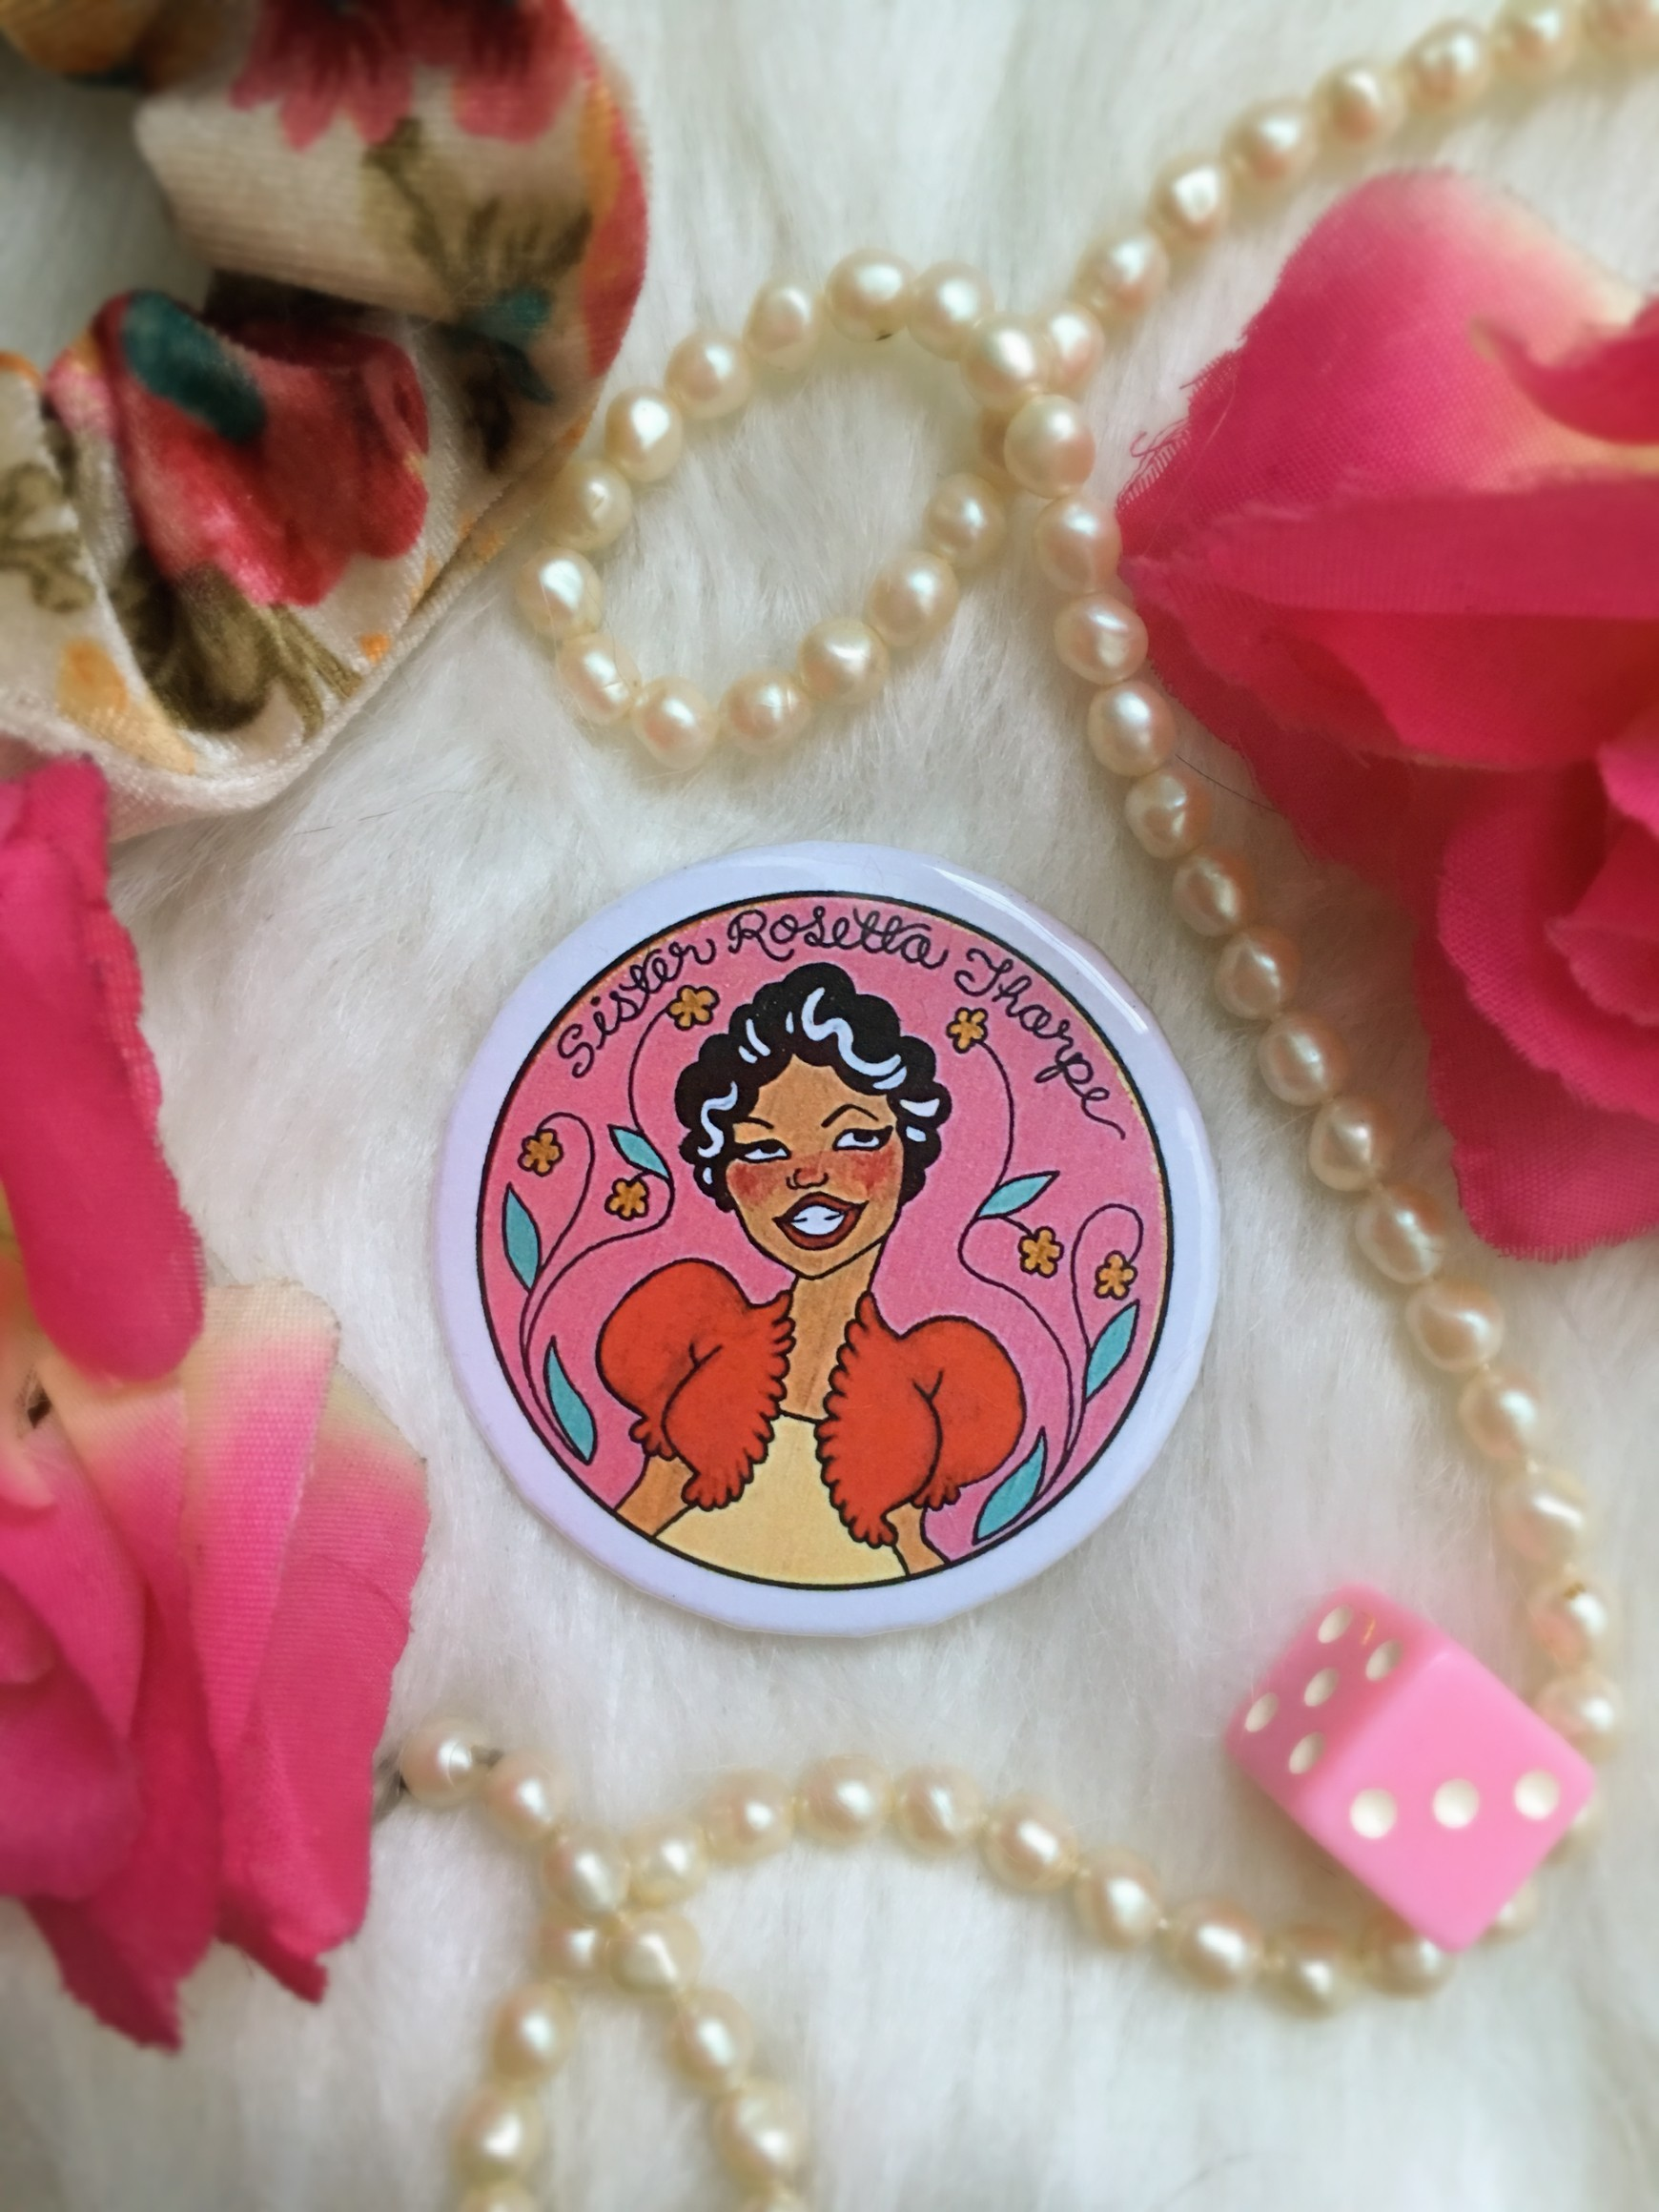 Historical Women Pin Collection: Sister Rosetta Tharpe